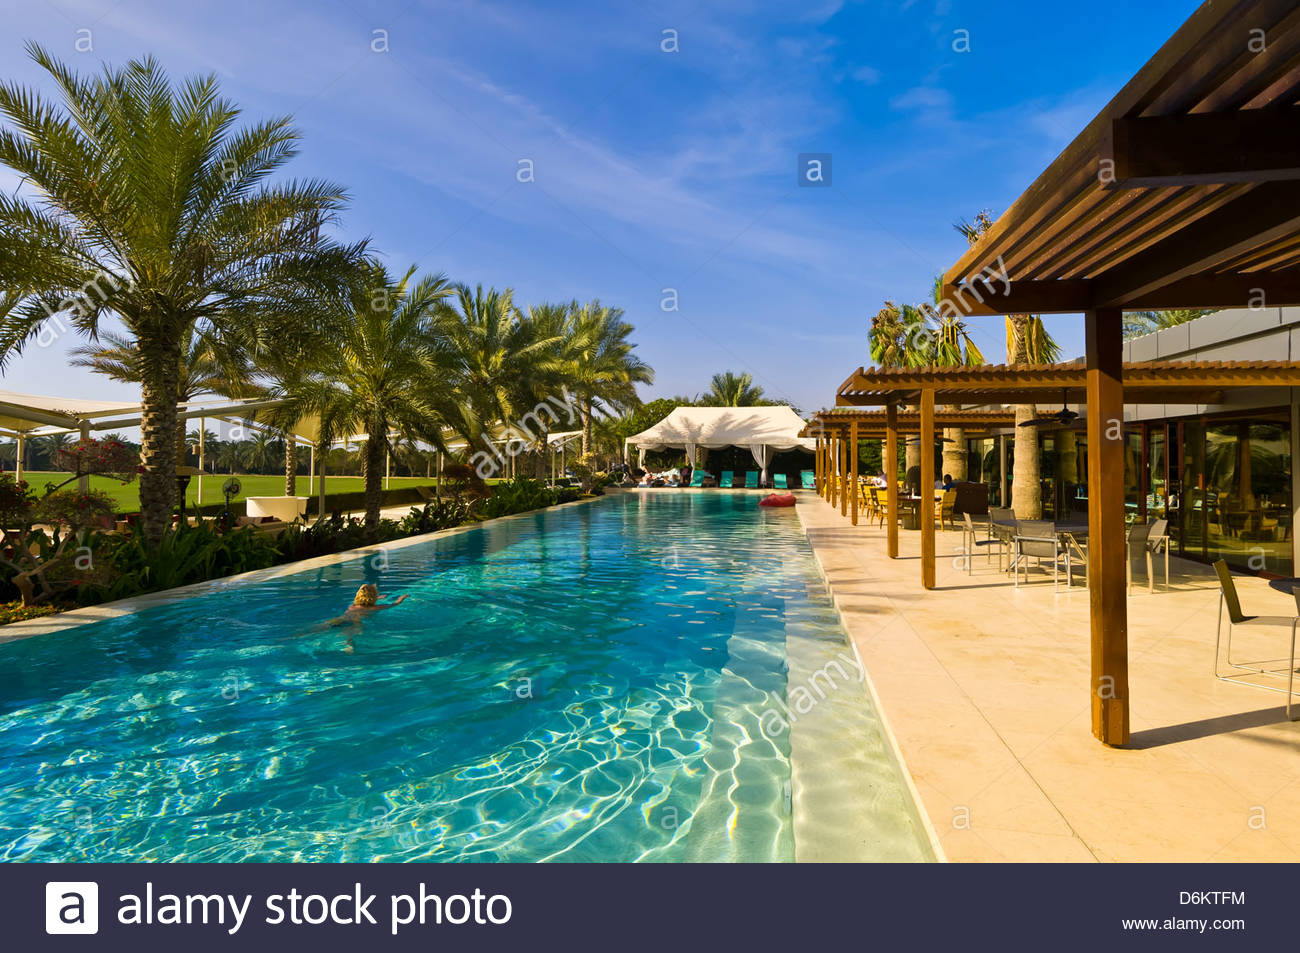 Swimming Pool Desert Palm Hotel Dubai United Arab Emirates Stock Photo 55755384 Alamy